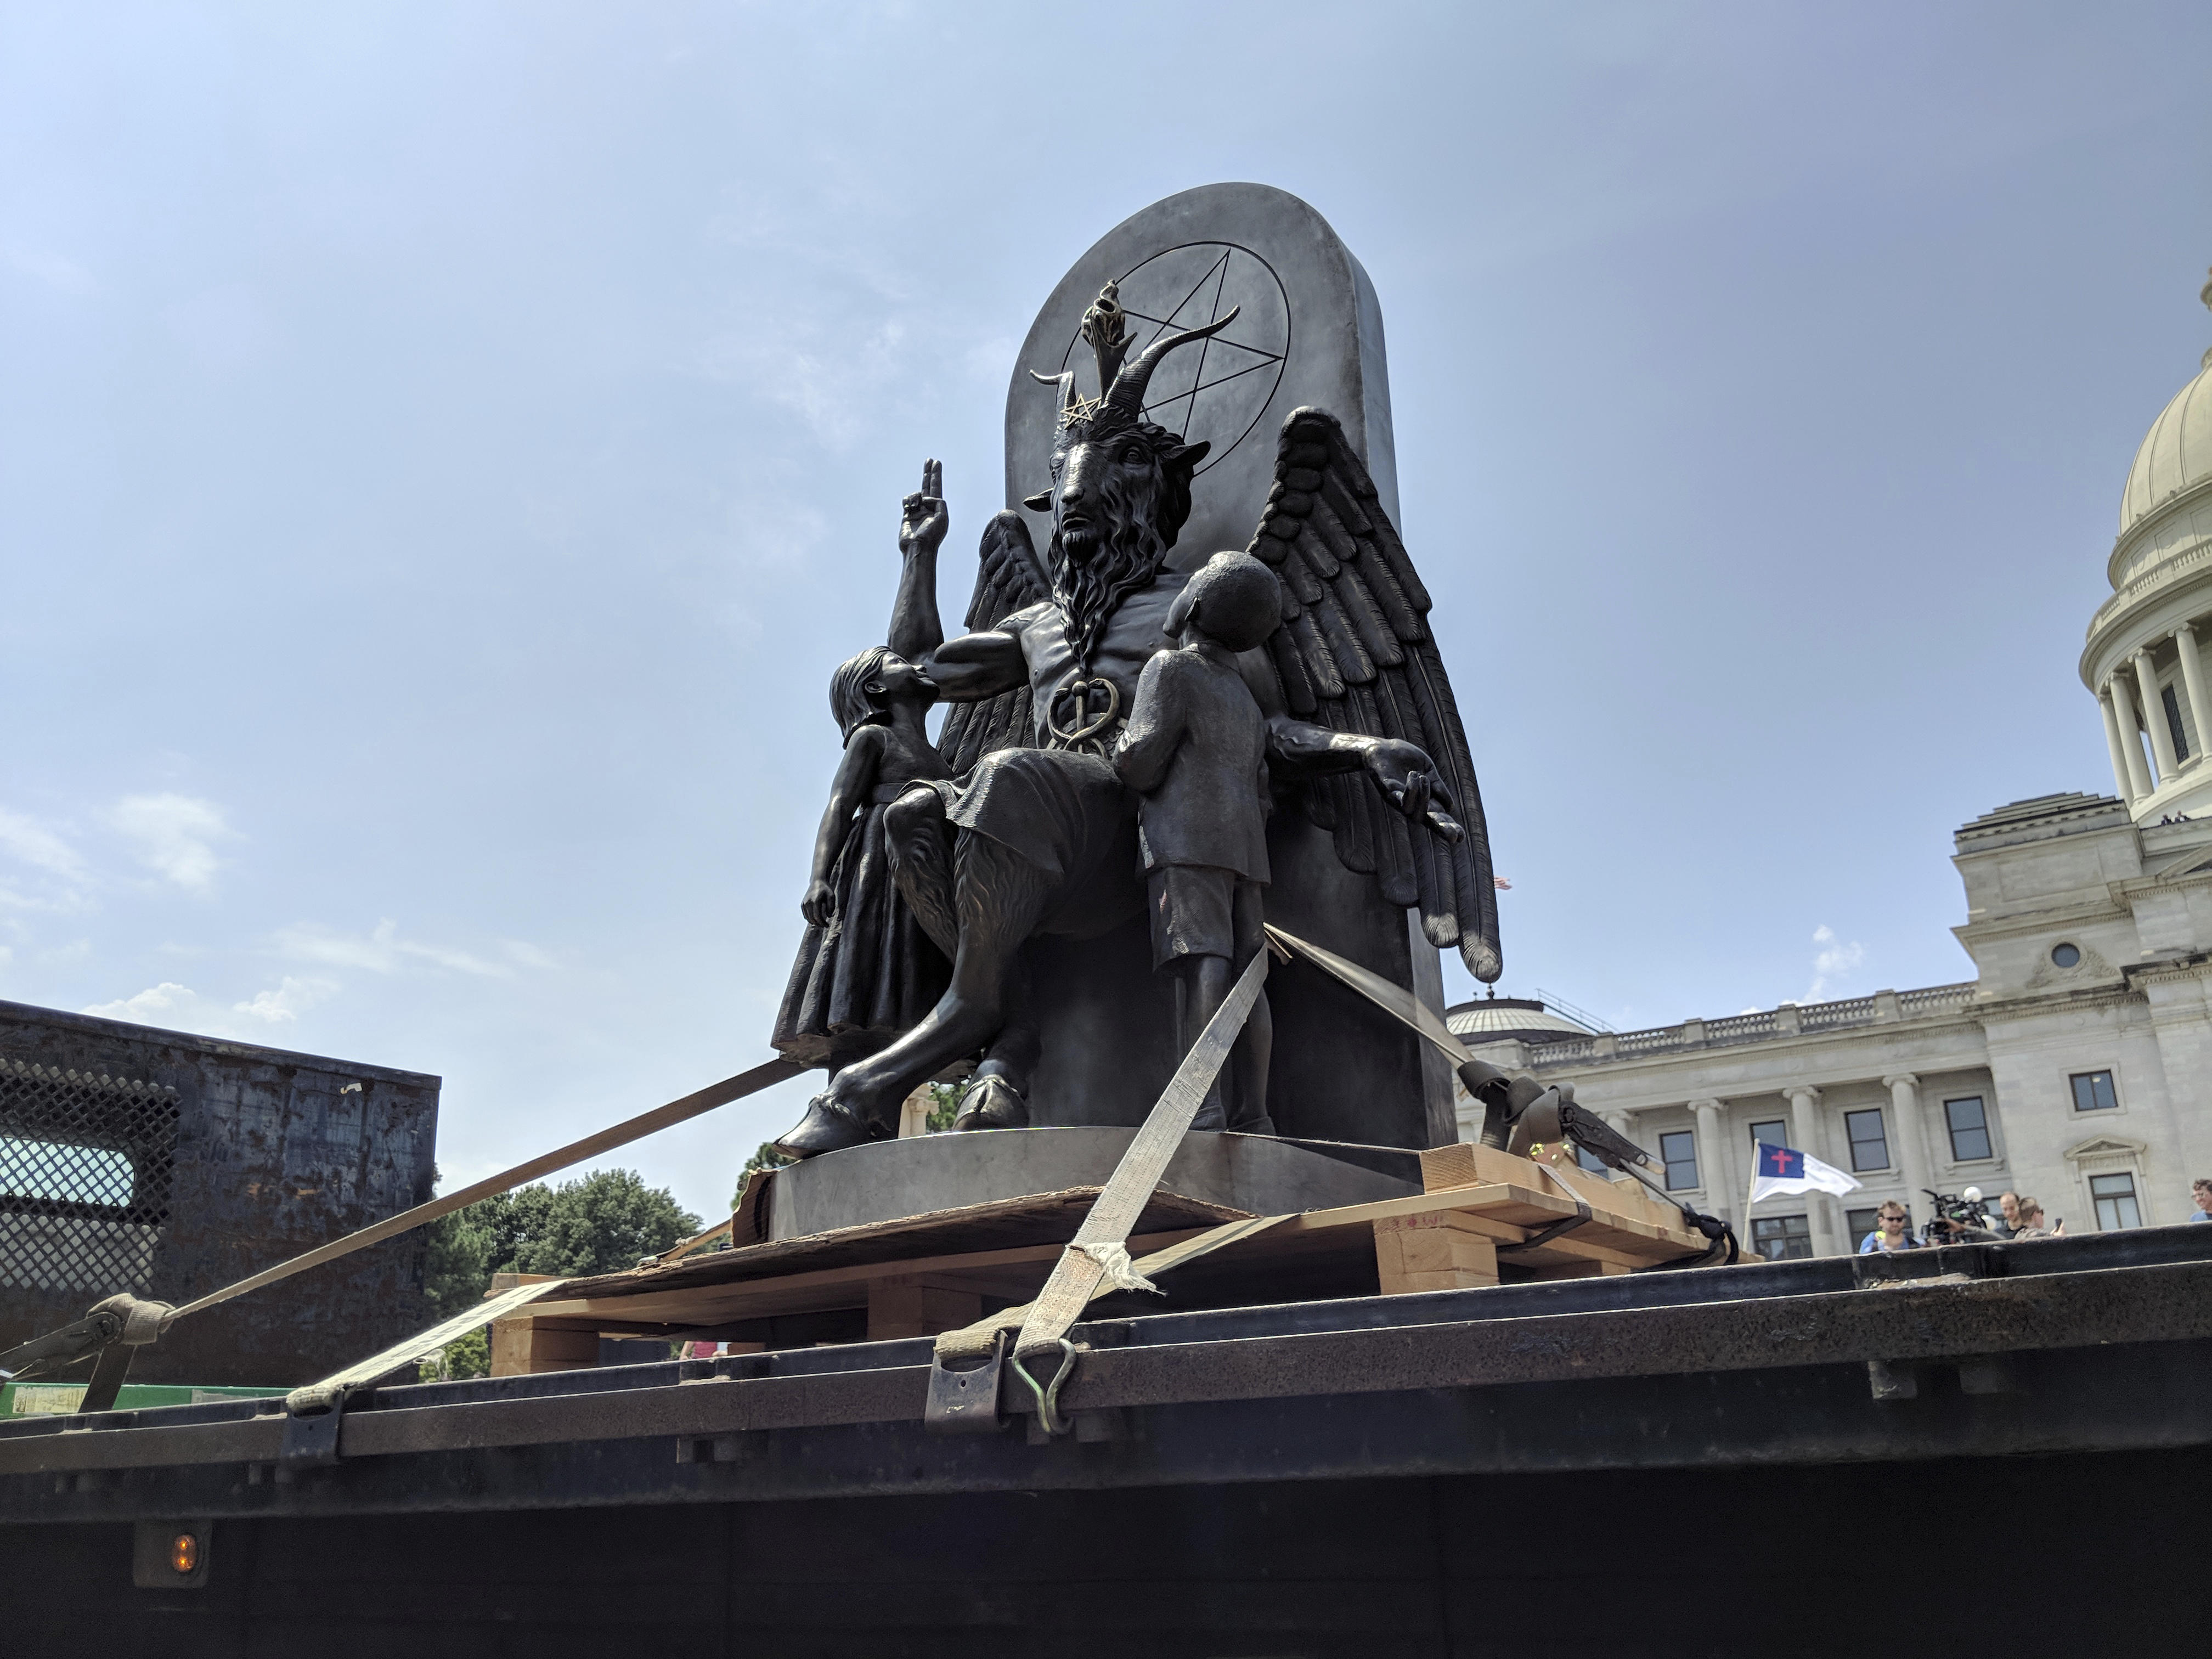 Satanic Temple unveils statue of goat-headed, winged